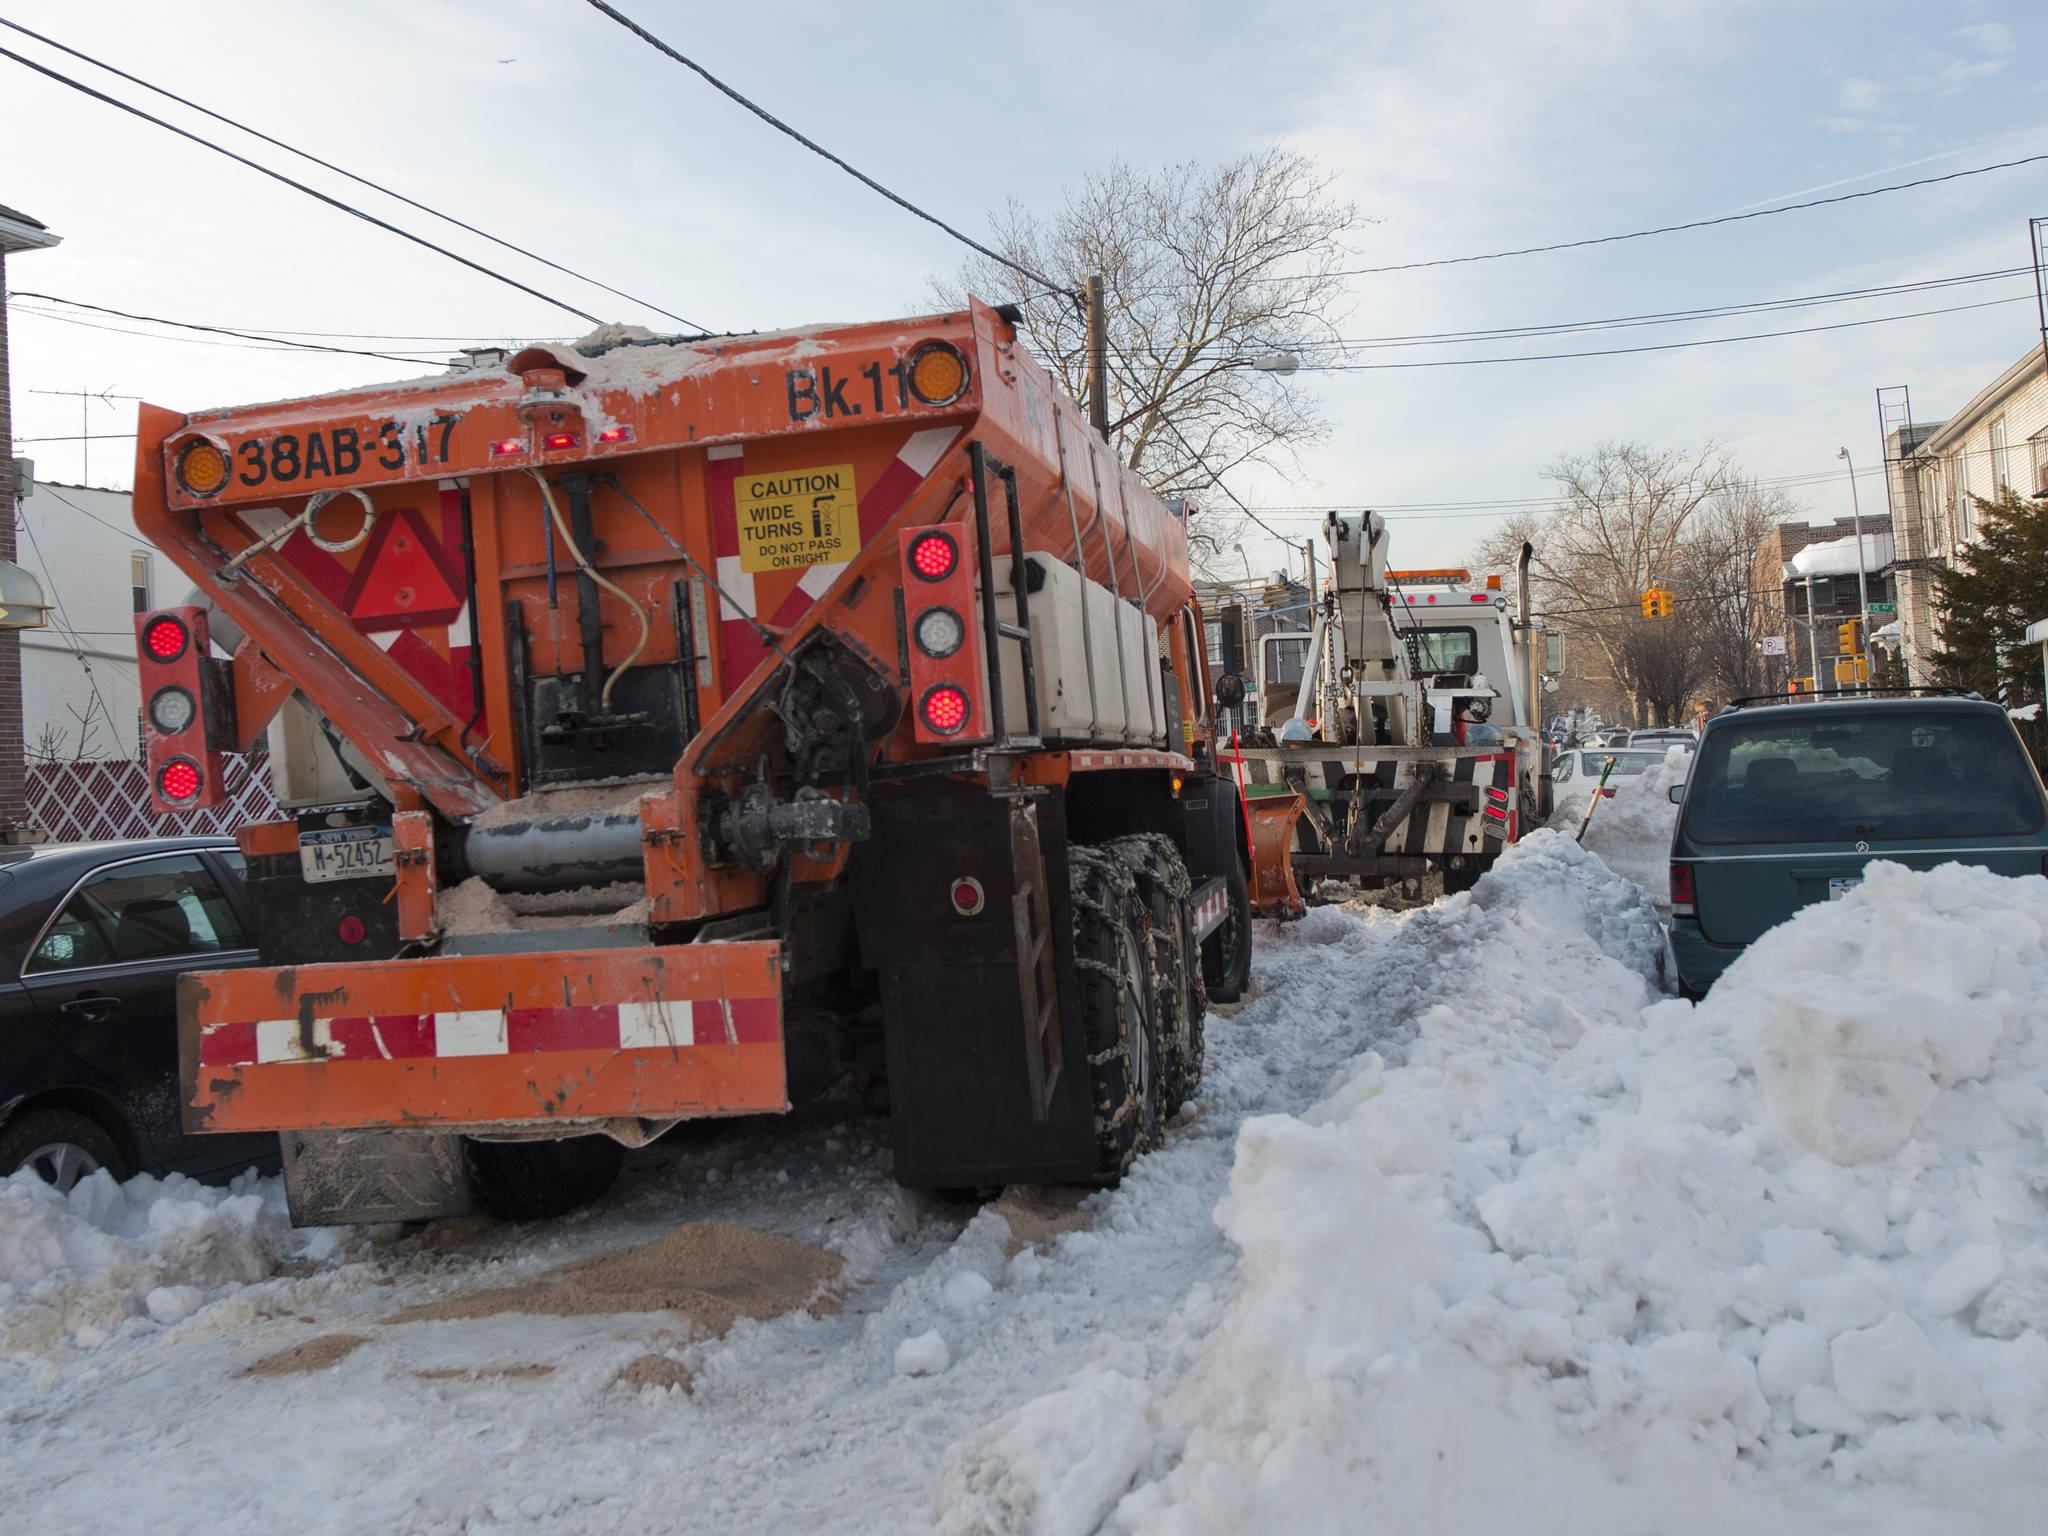 Scattered snow equipment breakdowns show city's not ready for next big storm, says mechanics' union leader